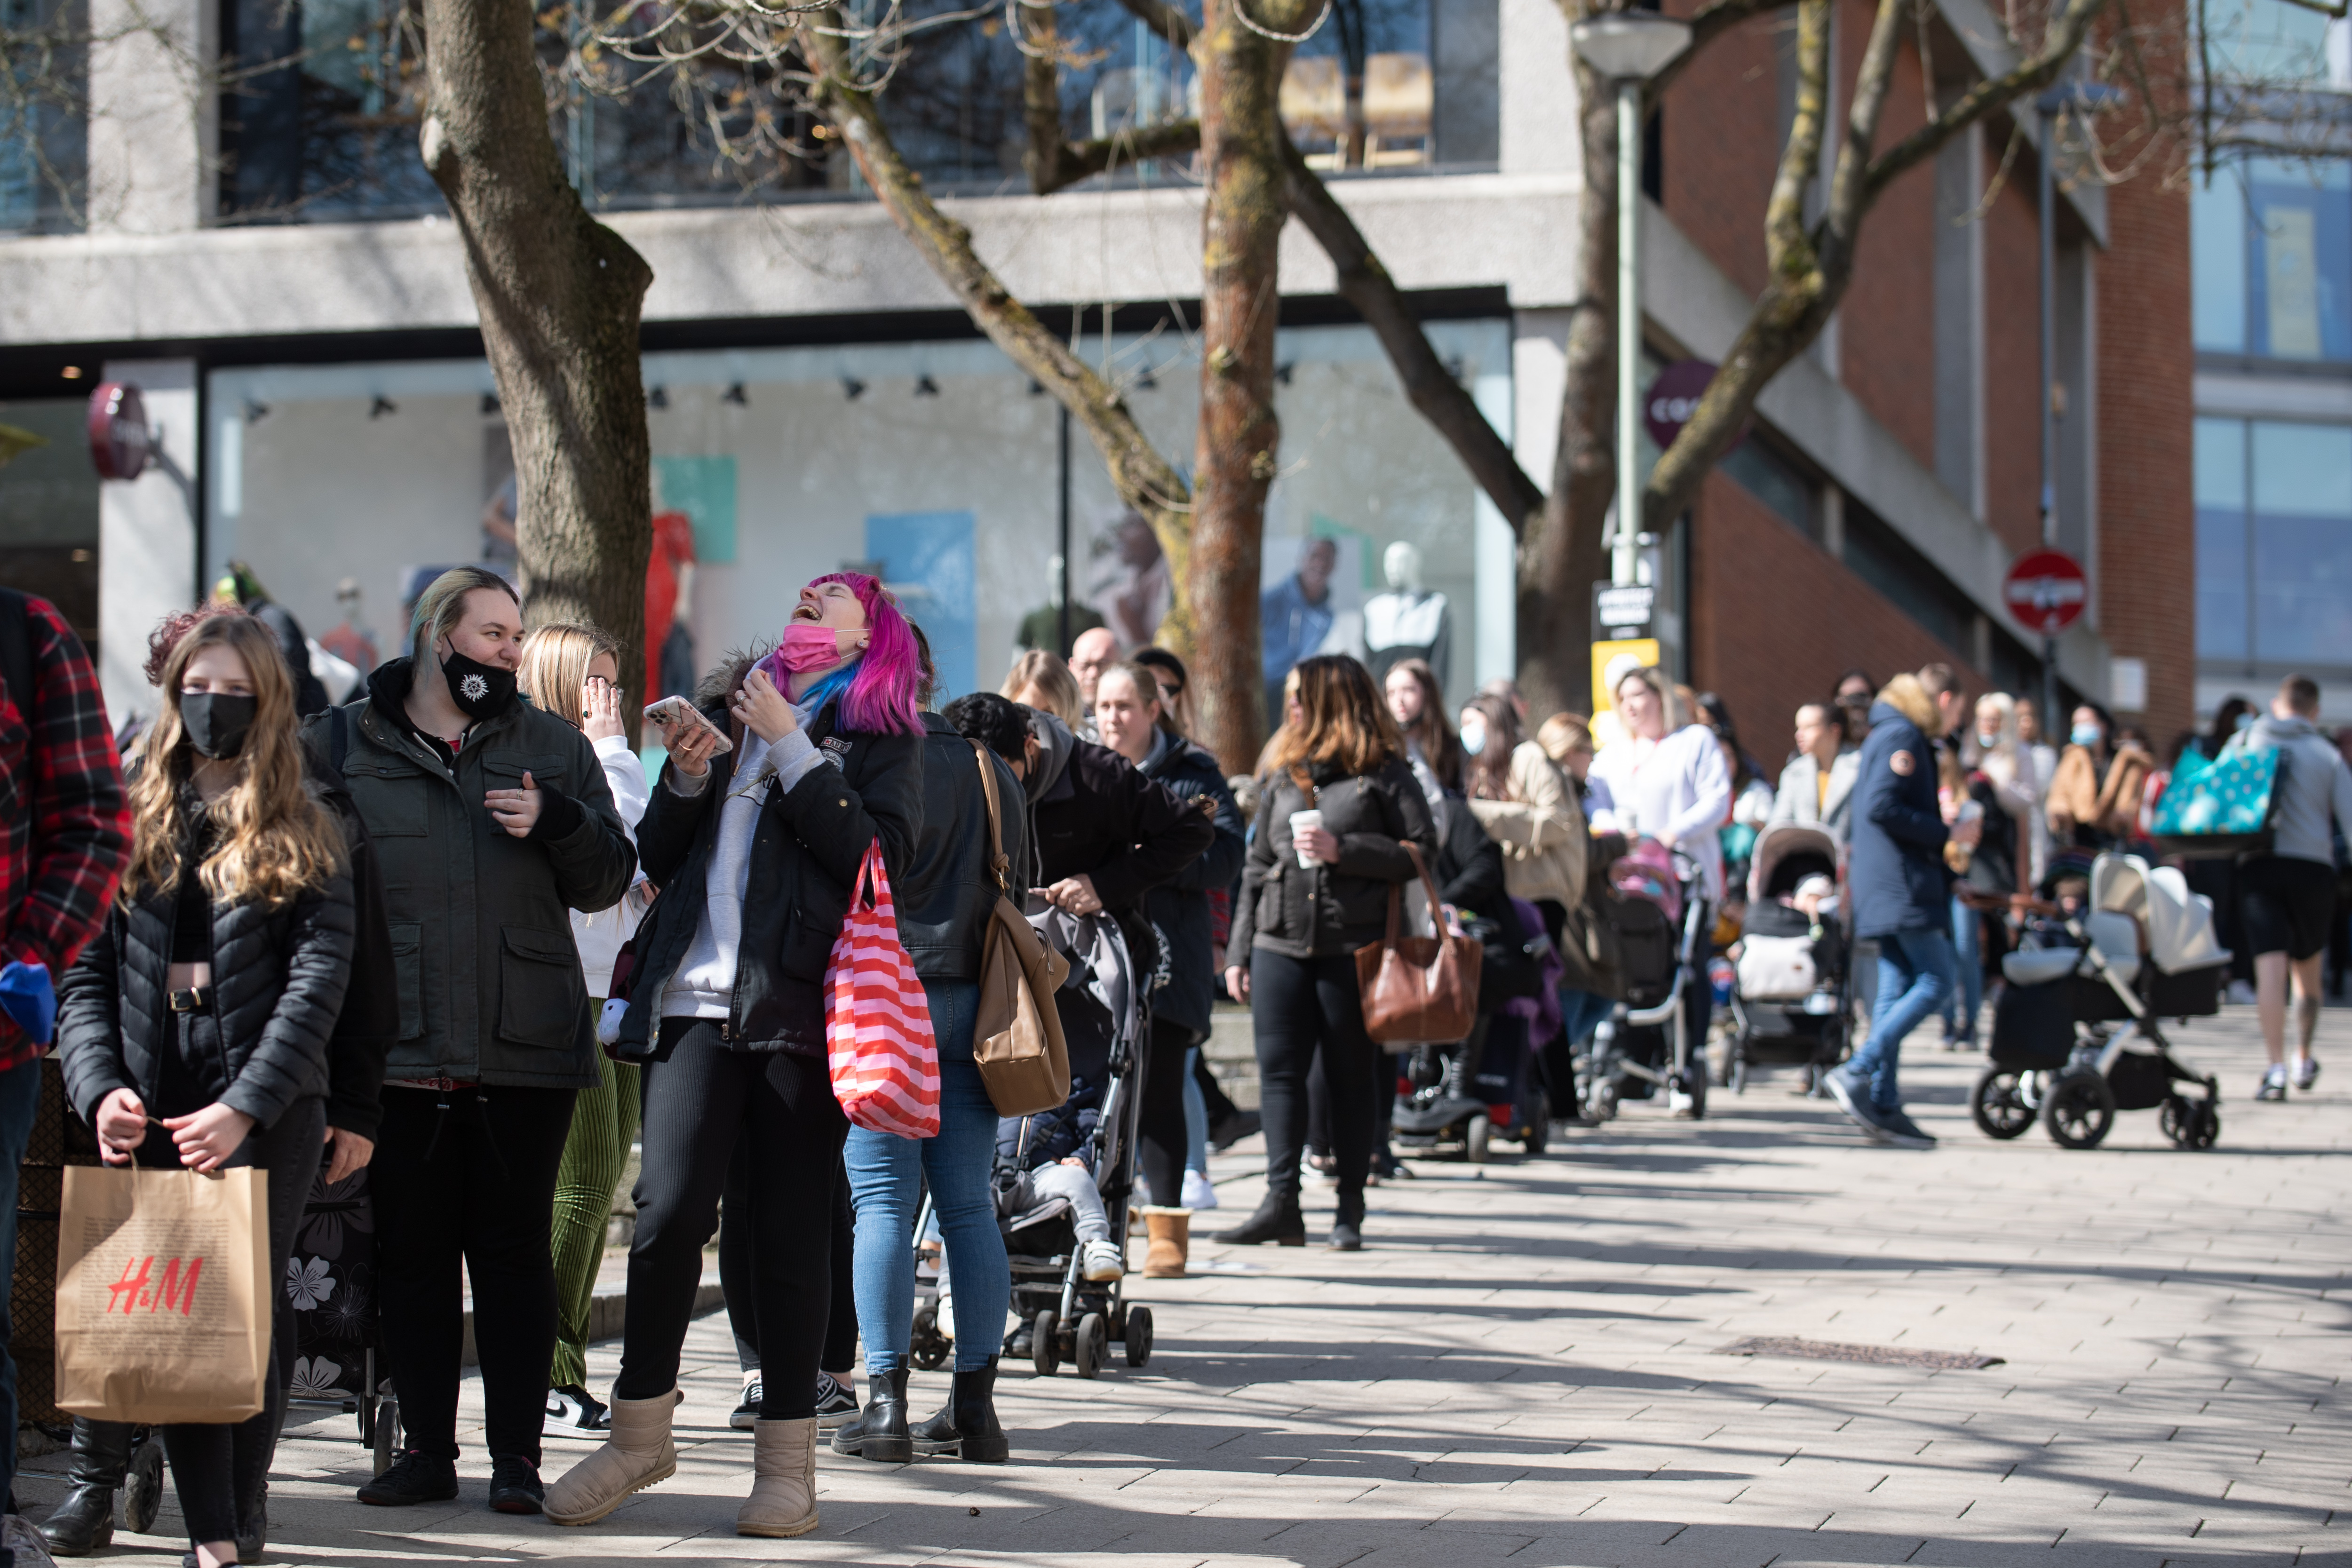 <p>Shoppers queue outside Primark in Norwich as England takes another step back towards normality with the further easing of lockdown restrictions. Picture date: Monday April 12, 2021.</p>